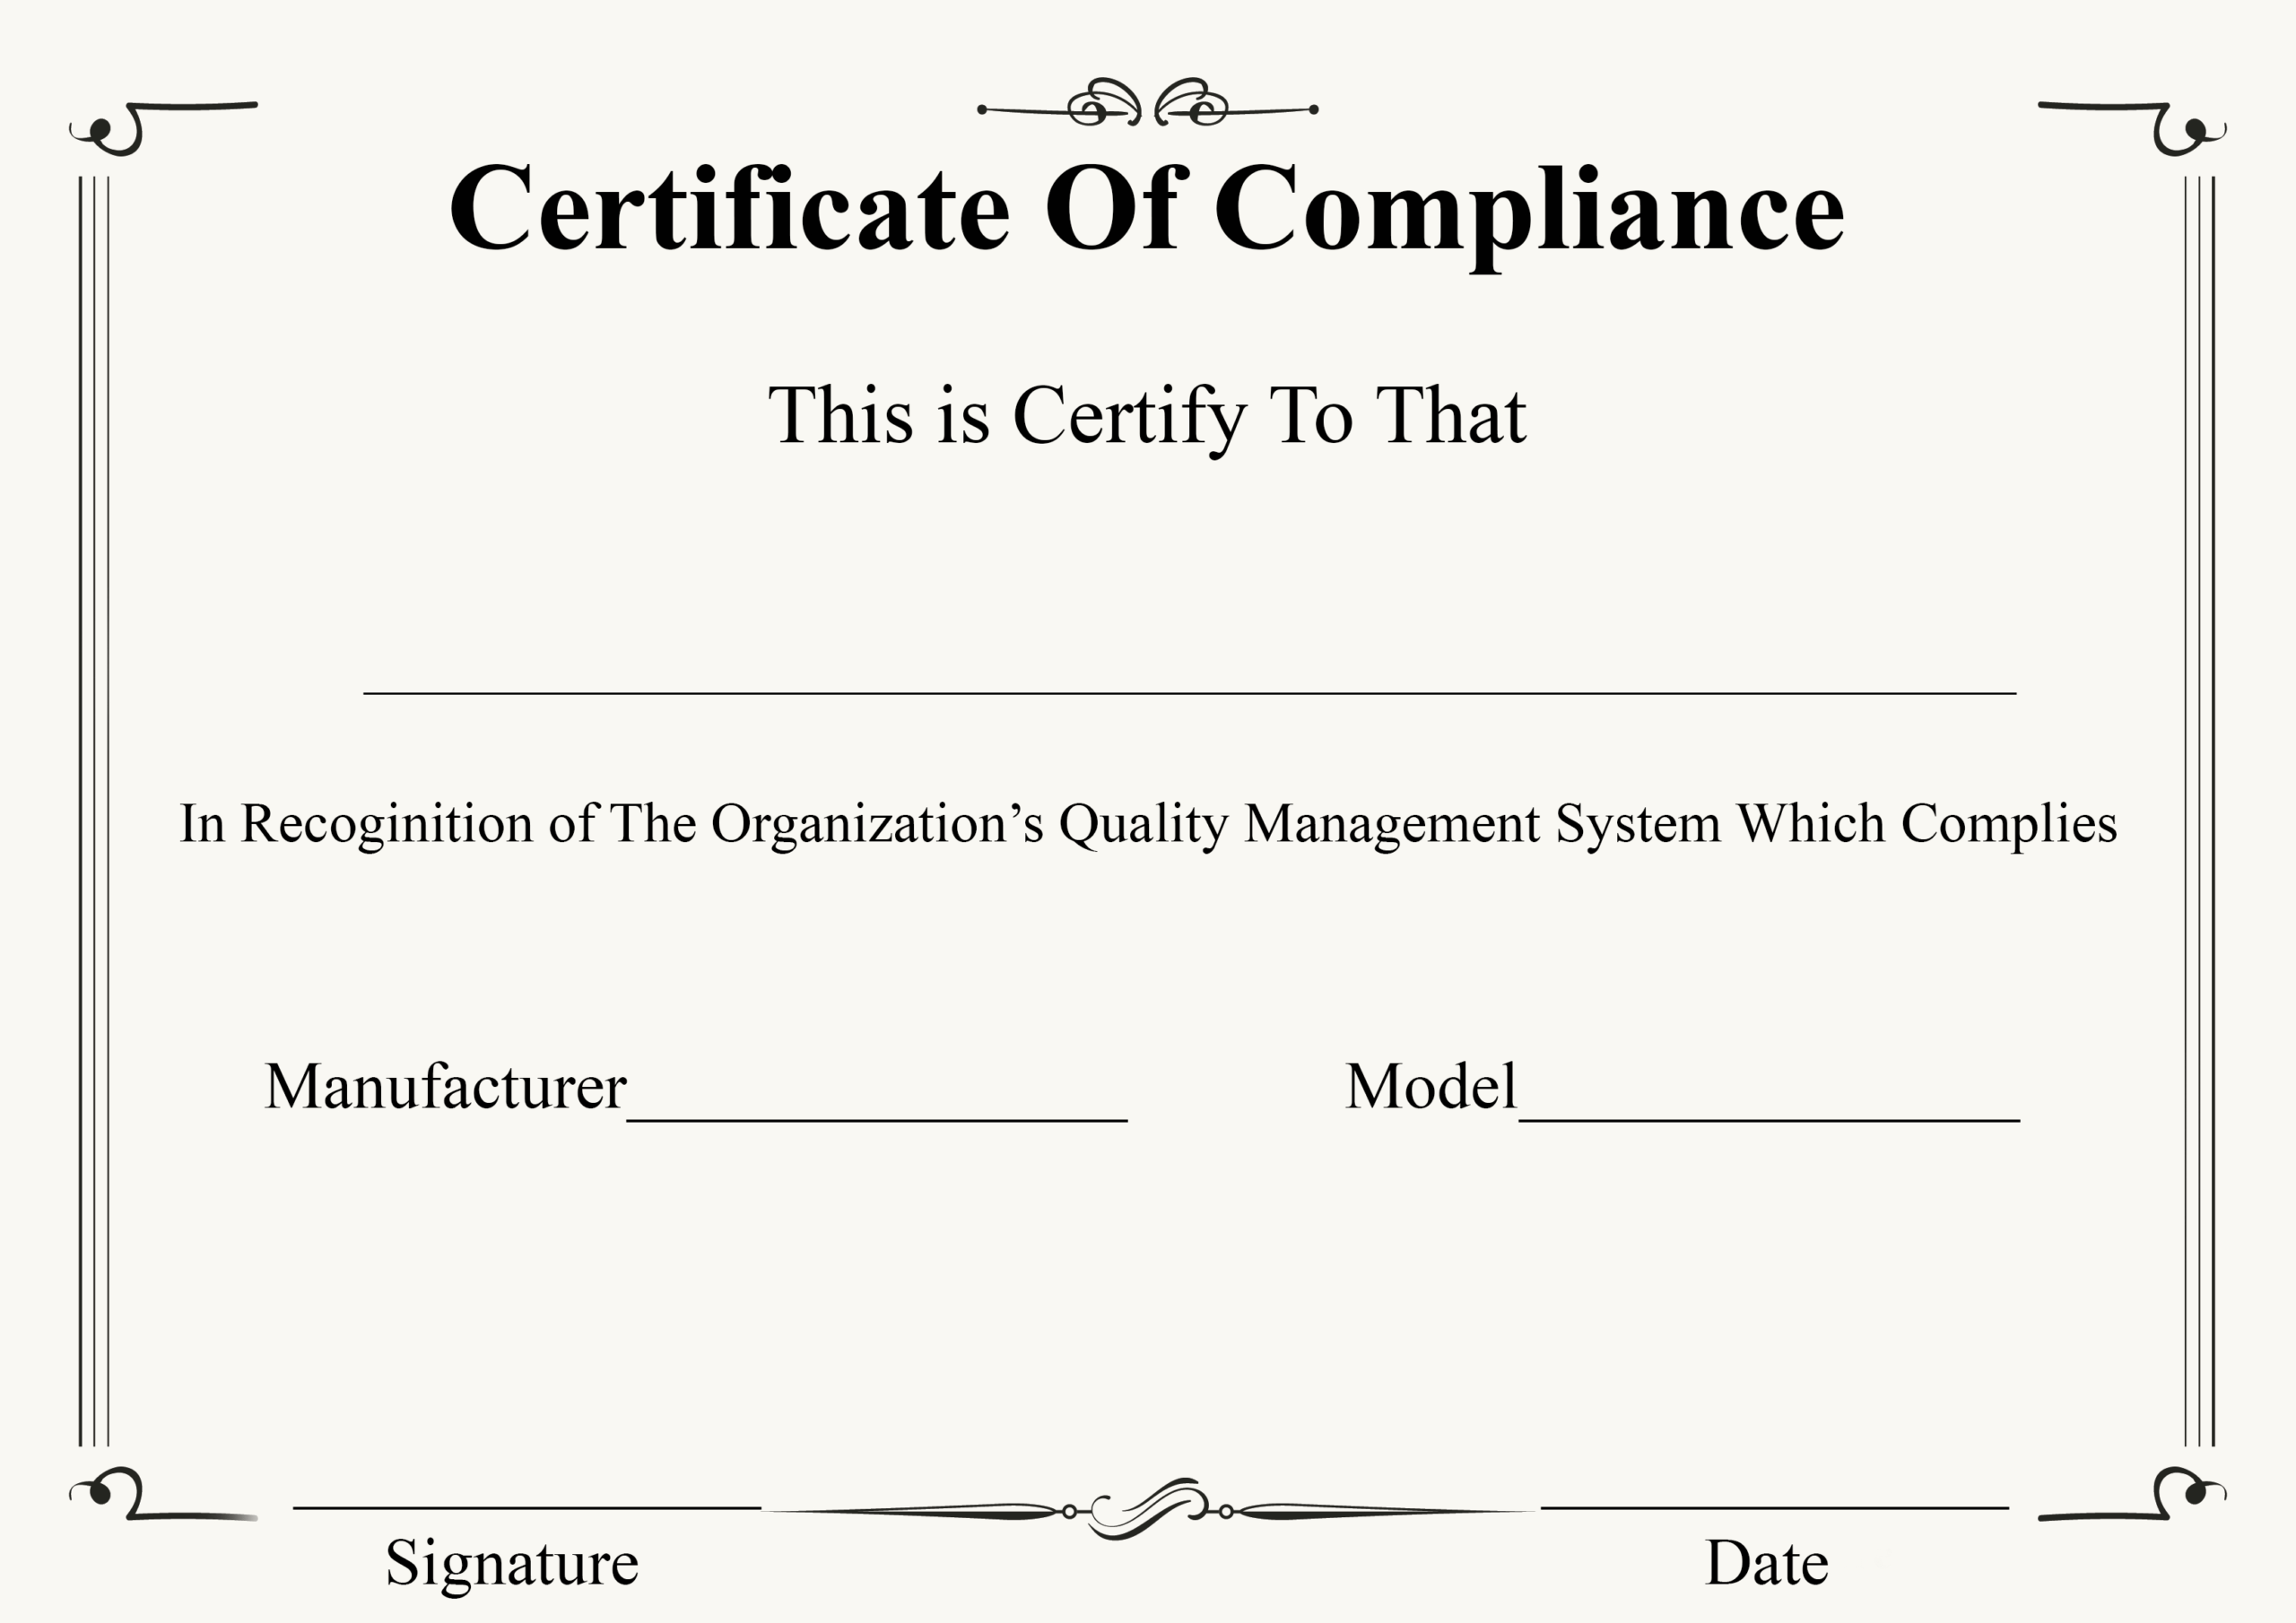 ❤️ Free Certificate Of Compliance Templates❤️ Throughout Certificate Of Compliance Template